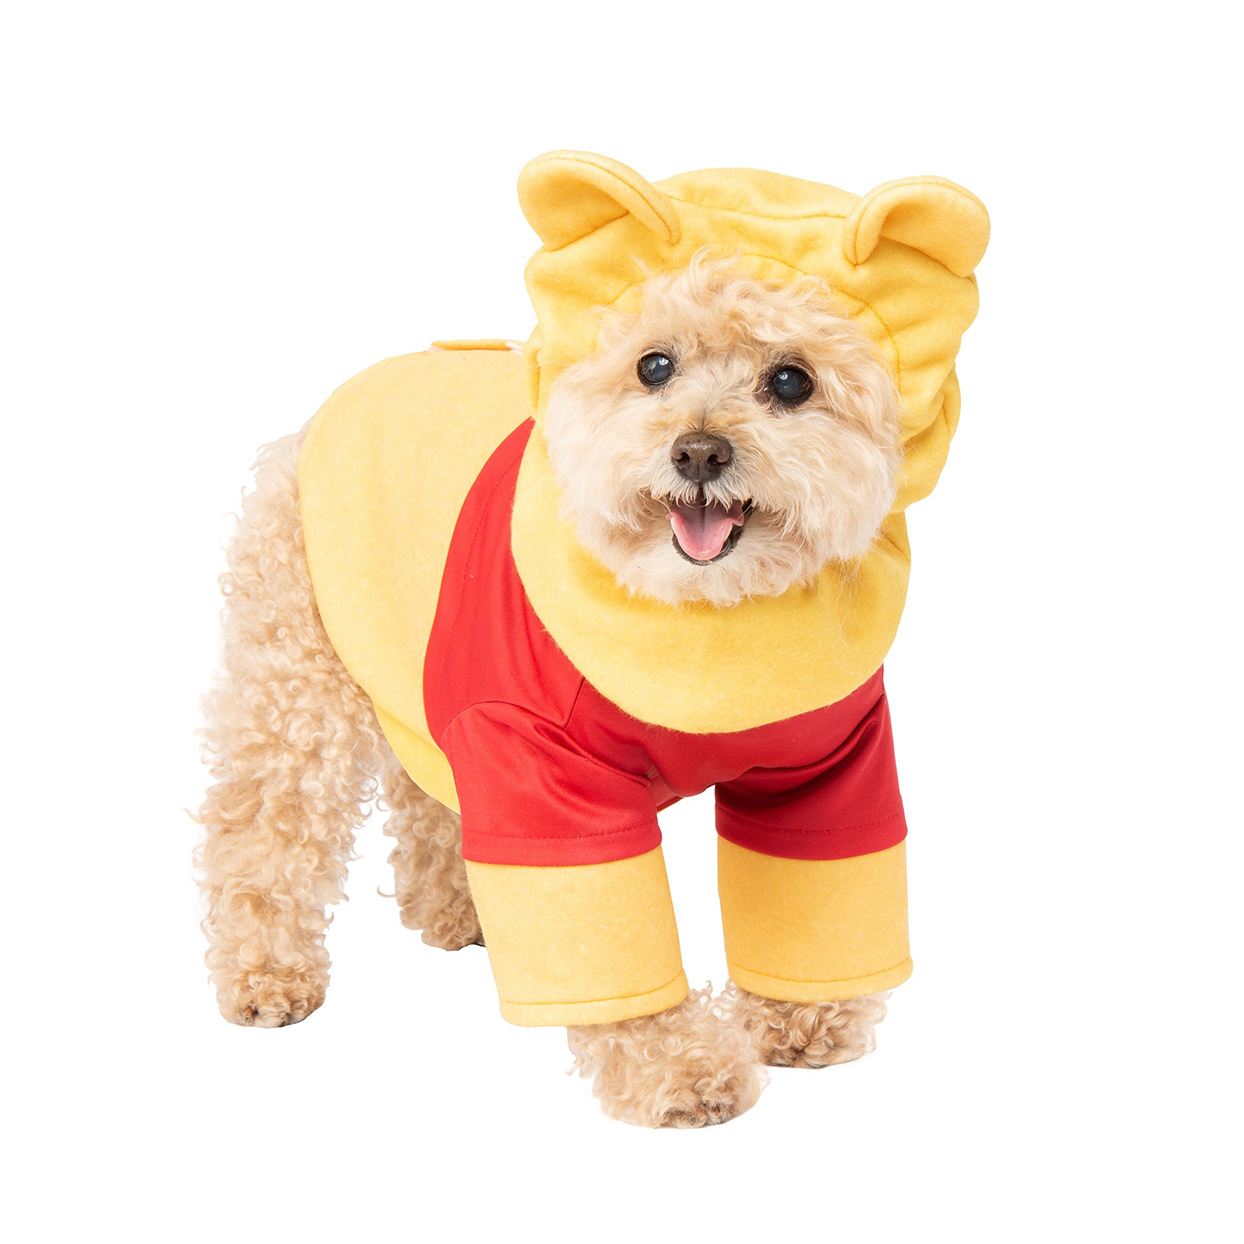 Dog wearing a Winnie the Pooh Pet Costume on a white background